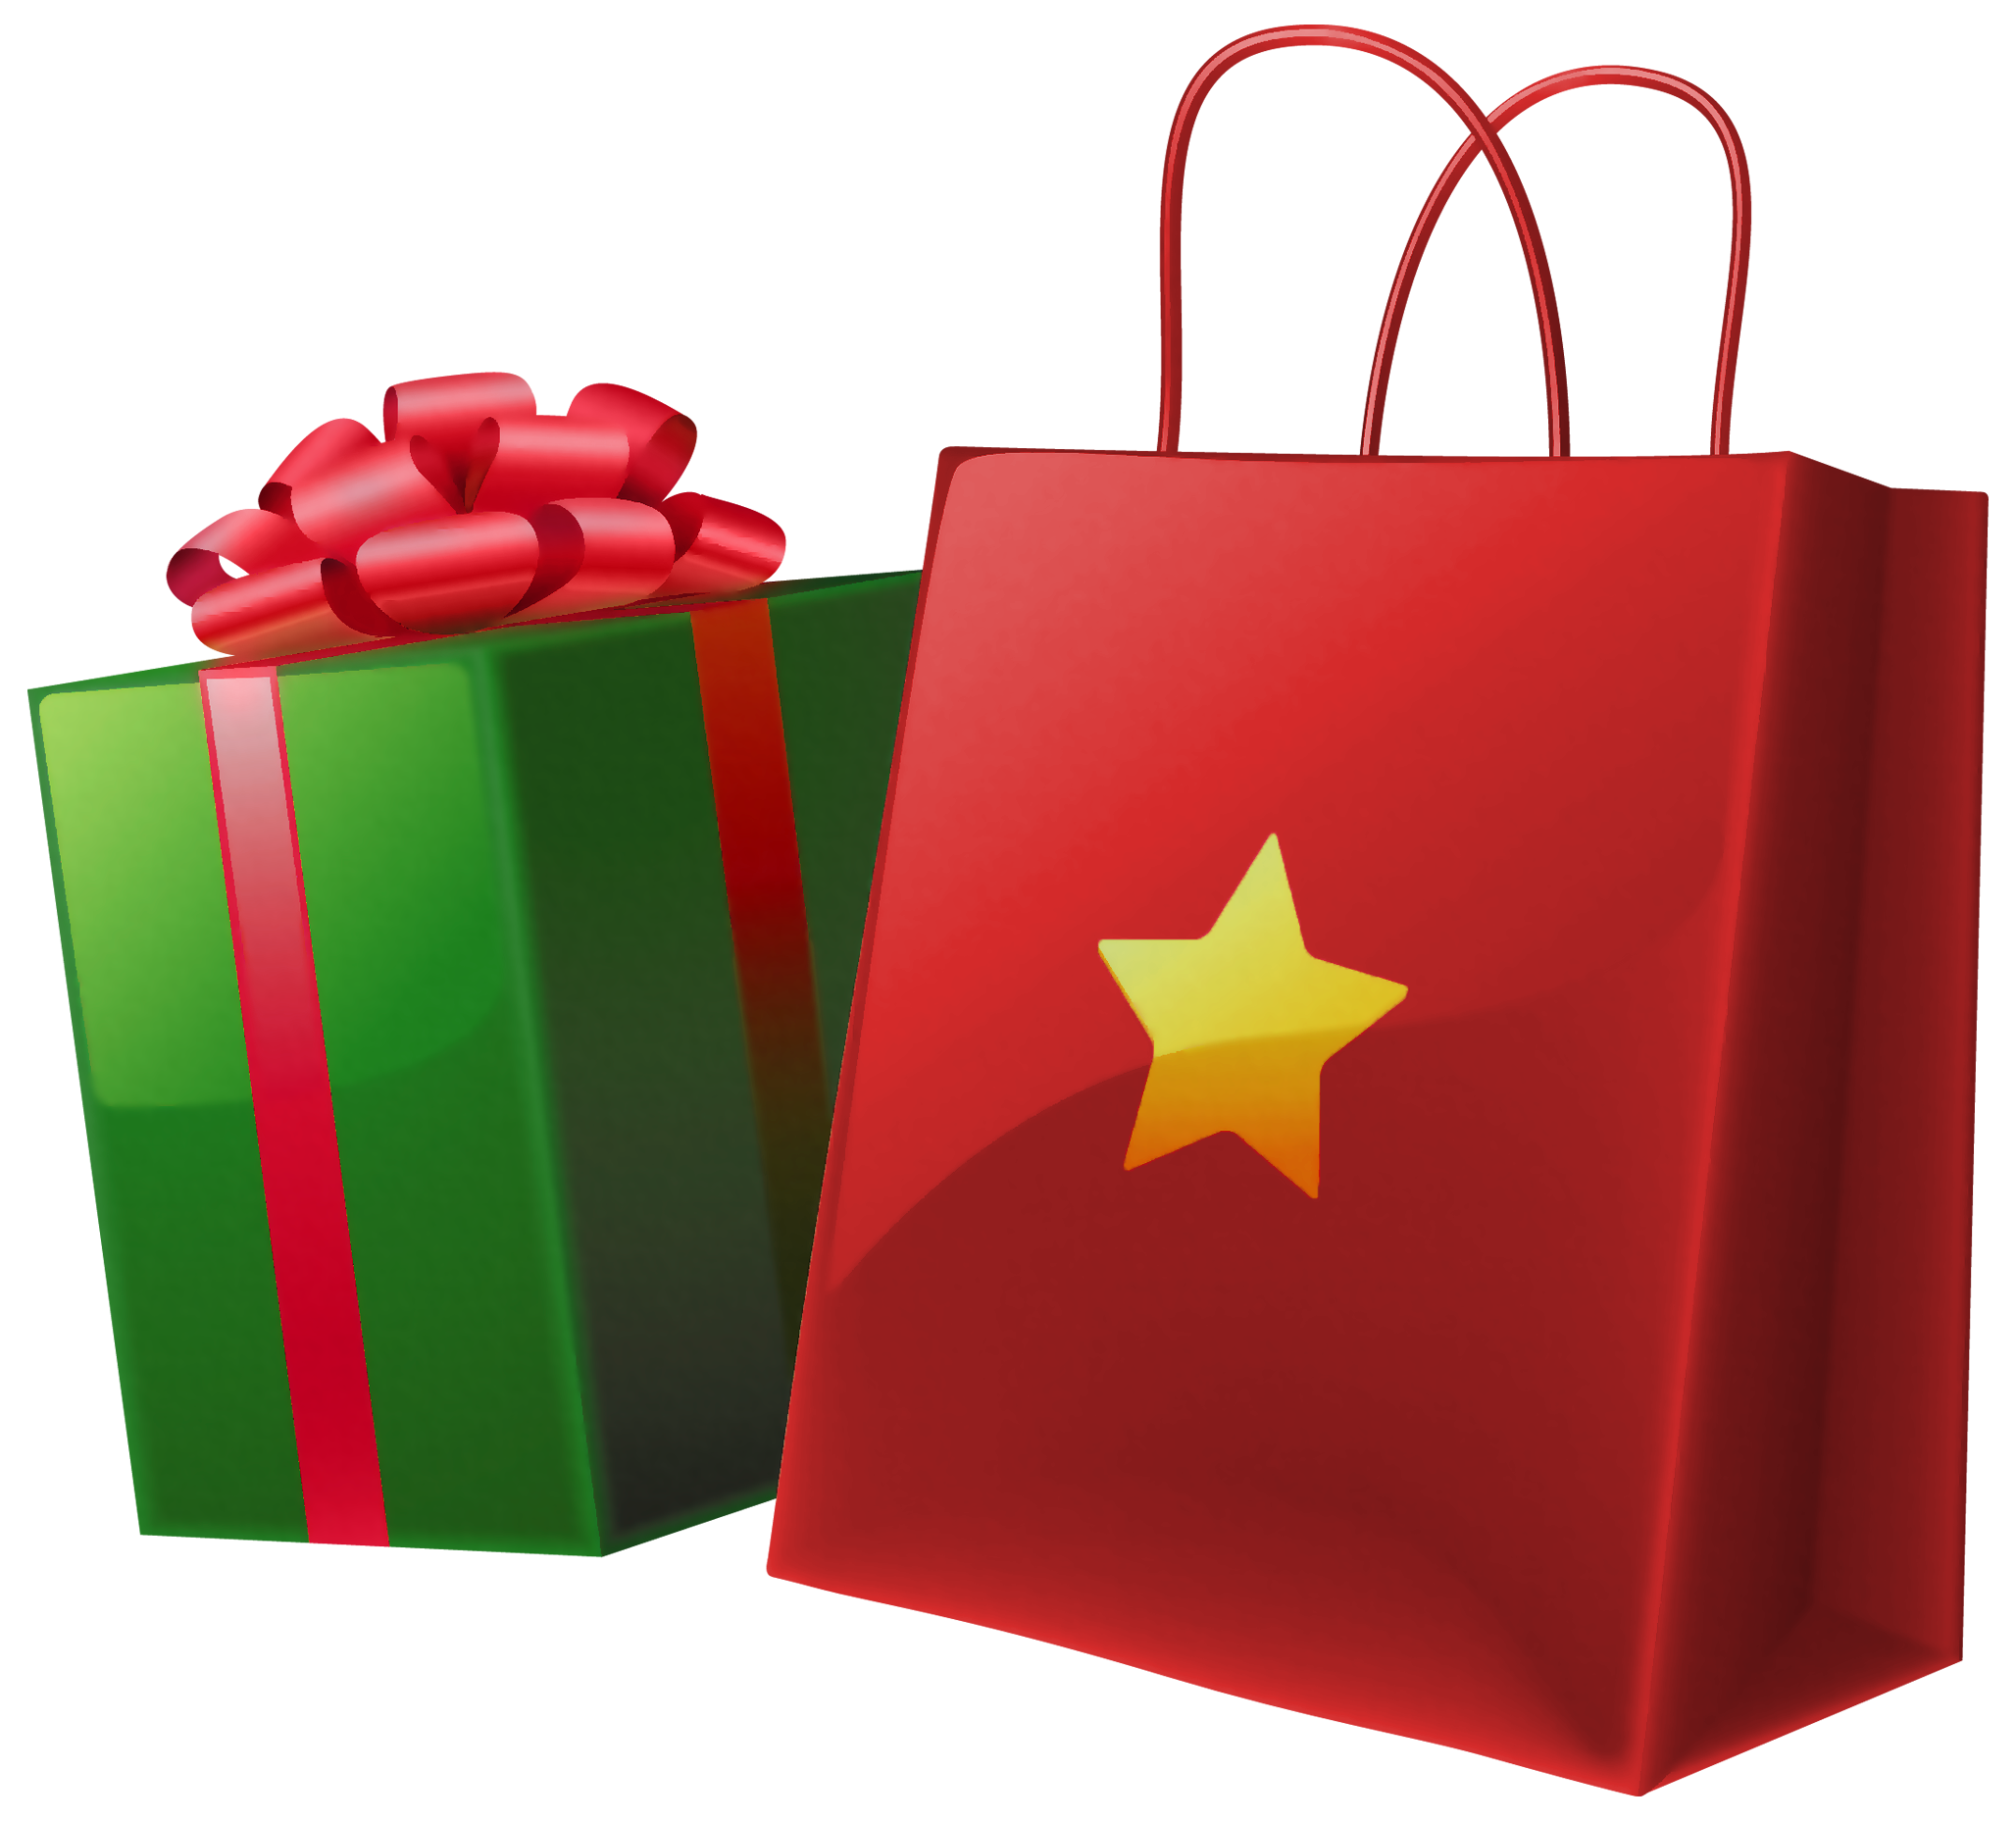 Christmas present clipart png jpg transparent stock Transparent Christmas Gift Box and Bag | Gallery Yopriceville ... jpg transparent stock